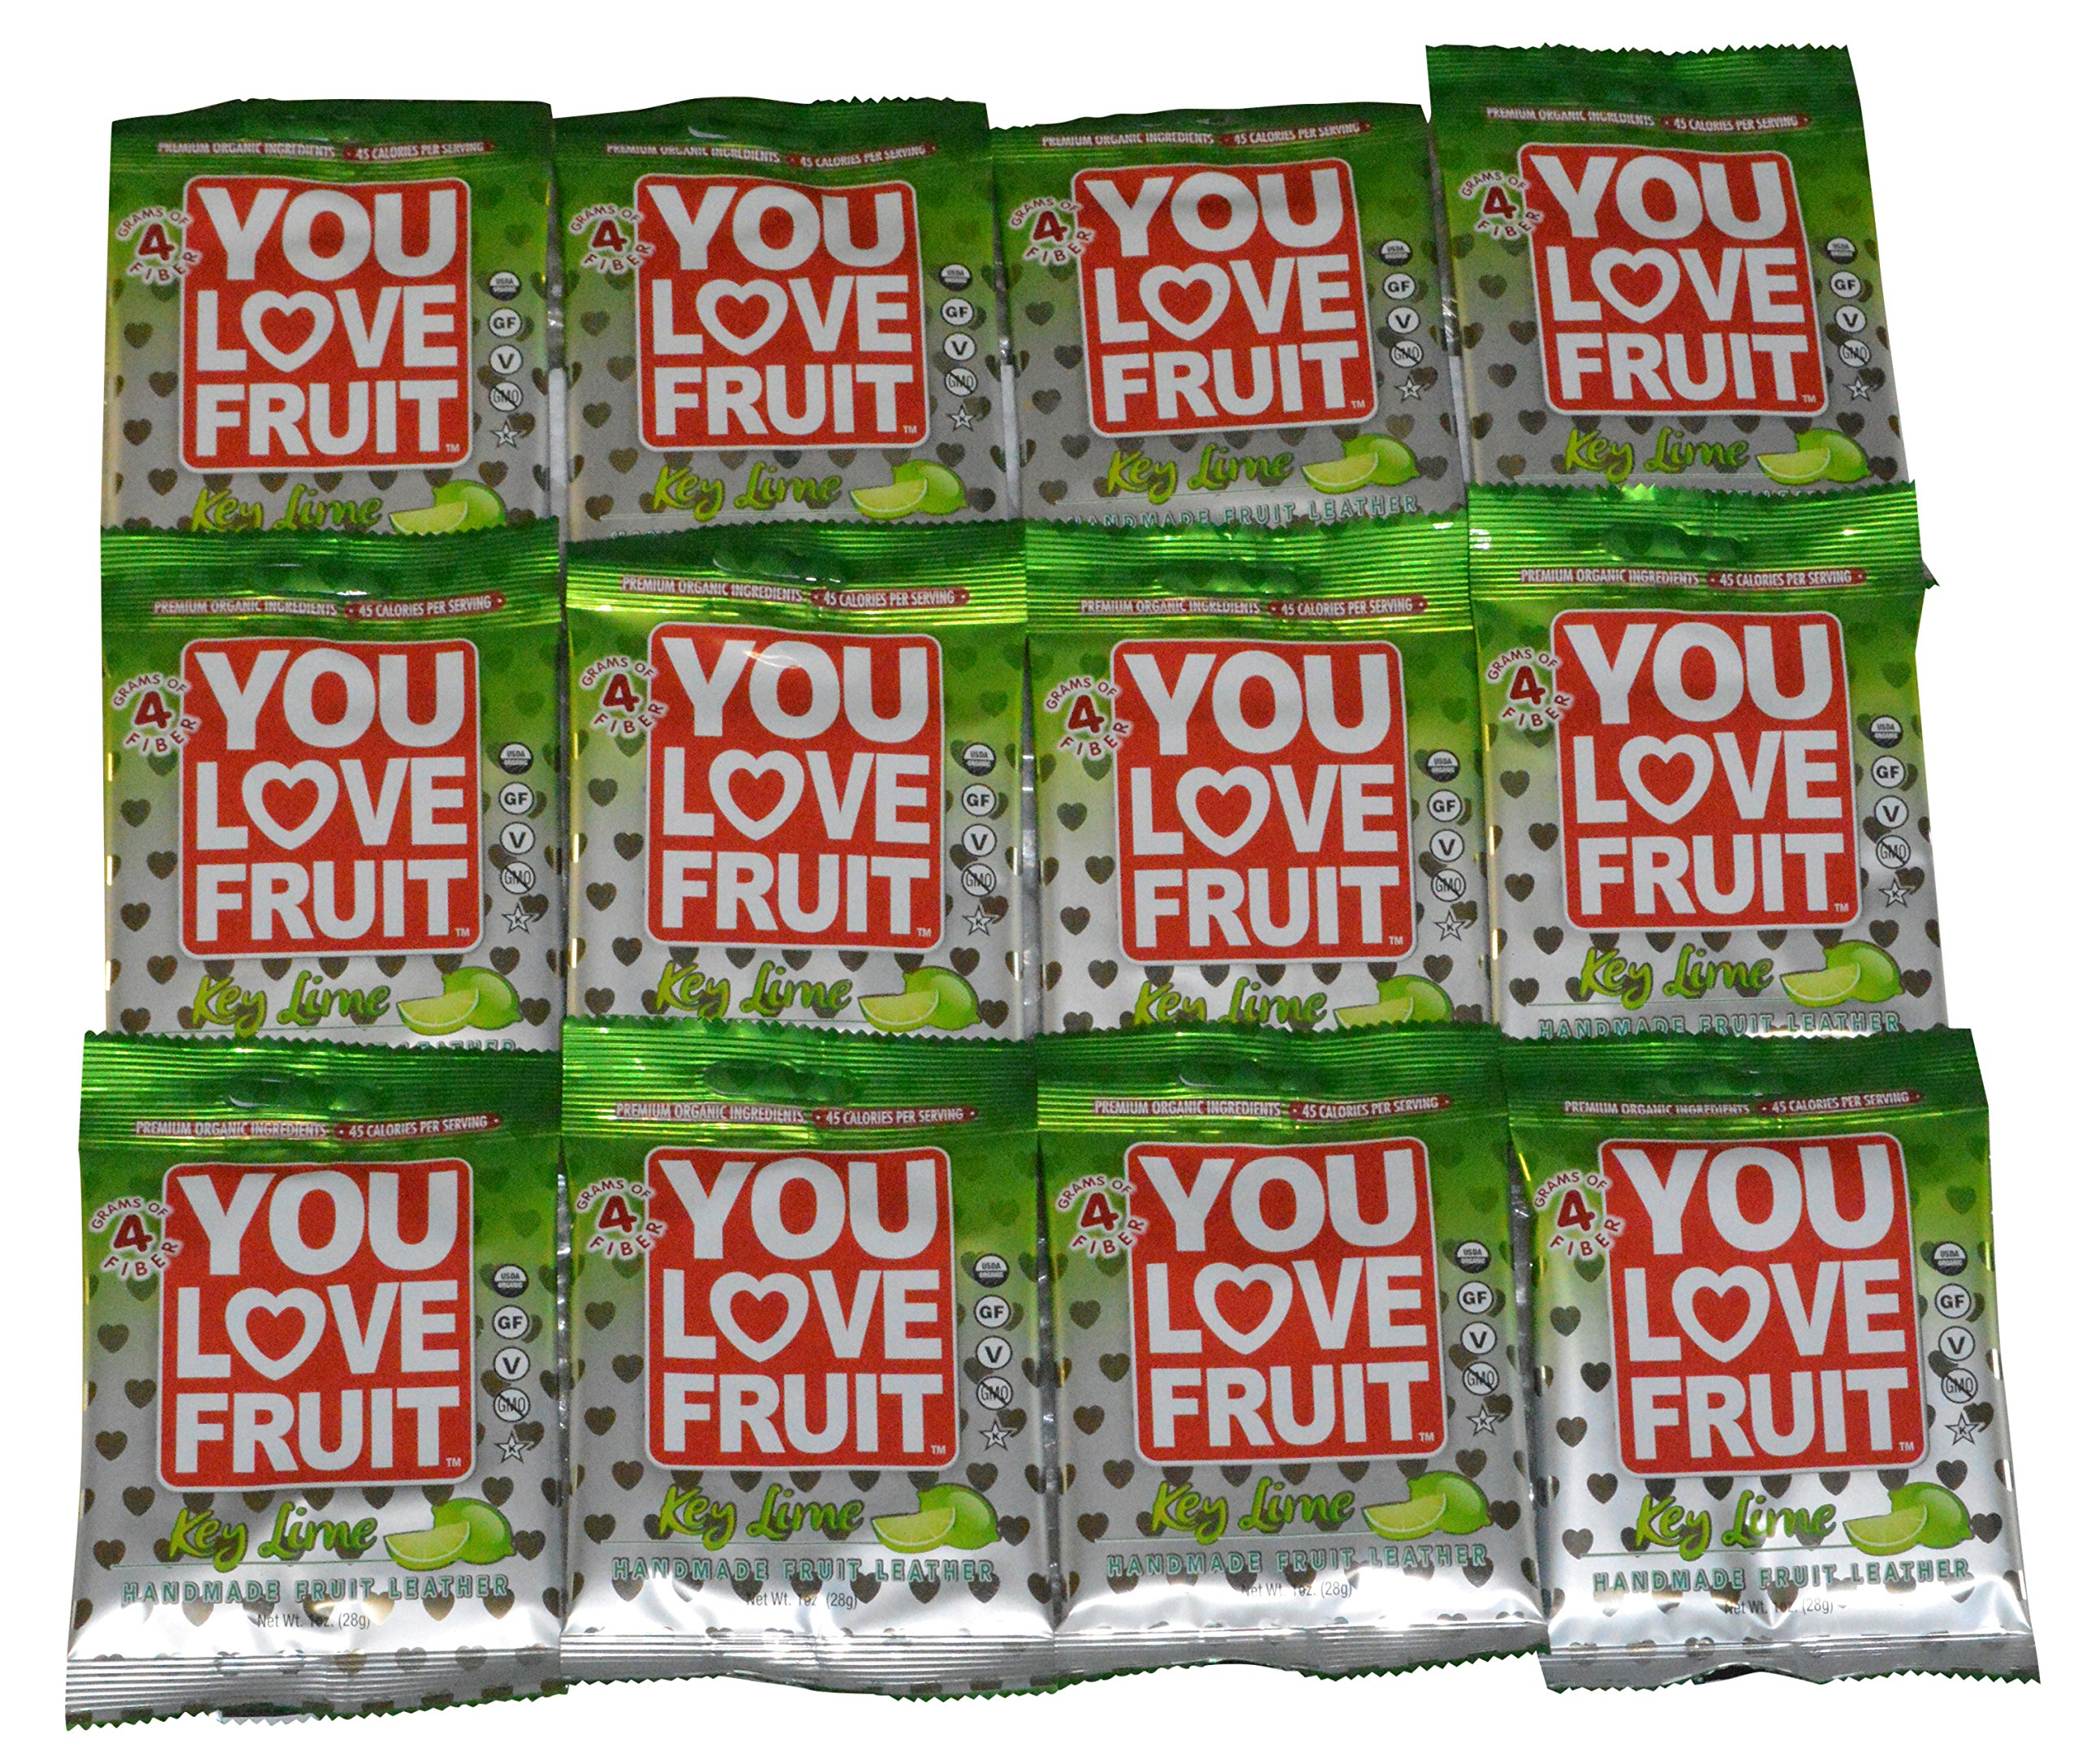 You Love Fruit Fruit Leather Key Lime by You Love Fruit